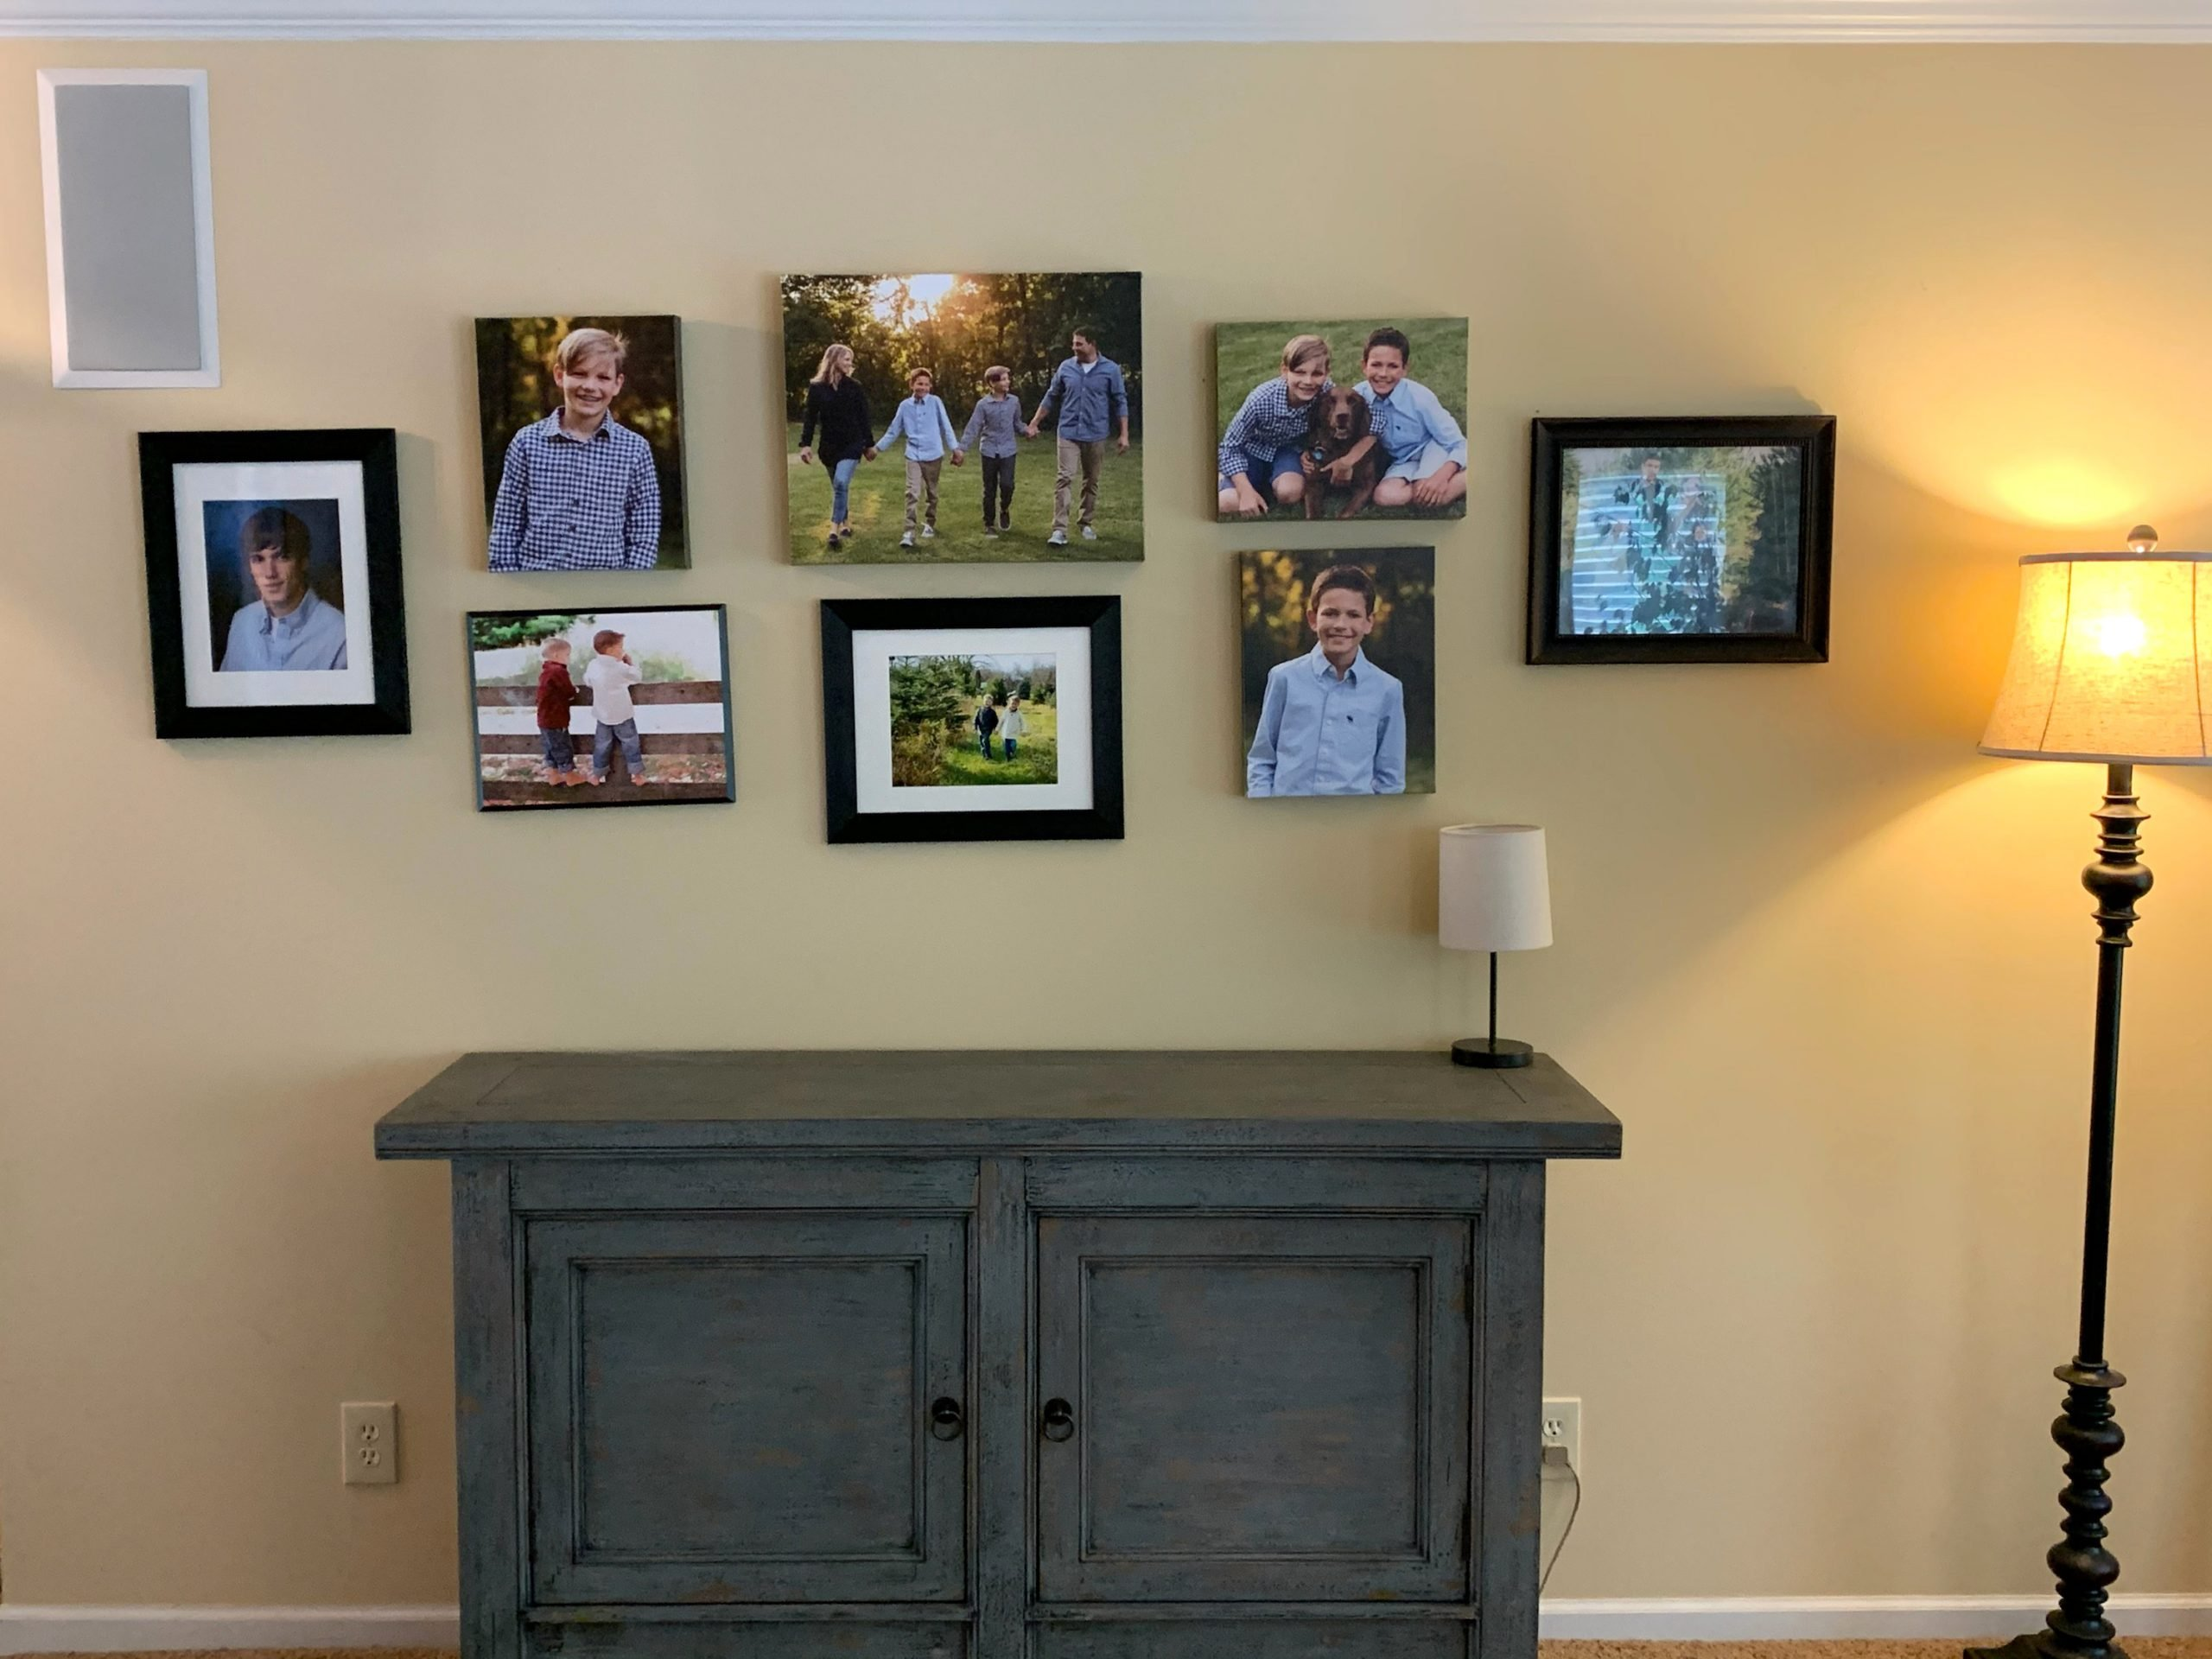 family photography used for a gallery wall